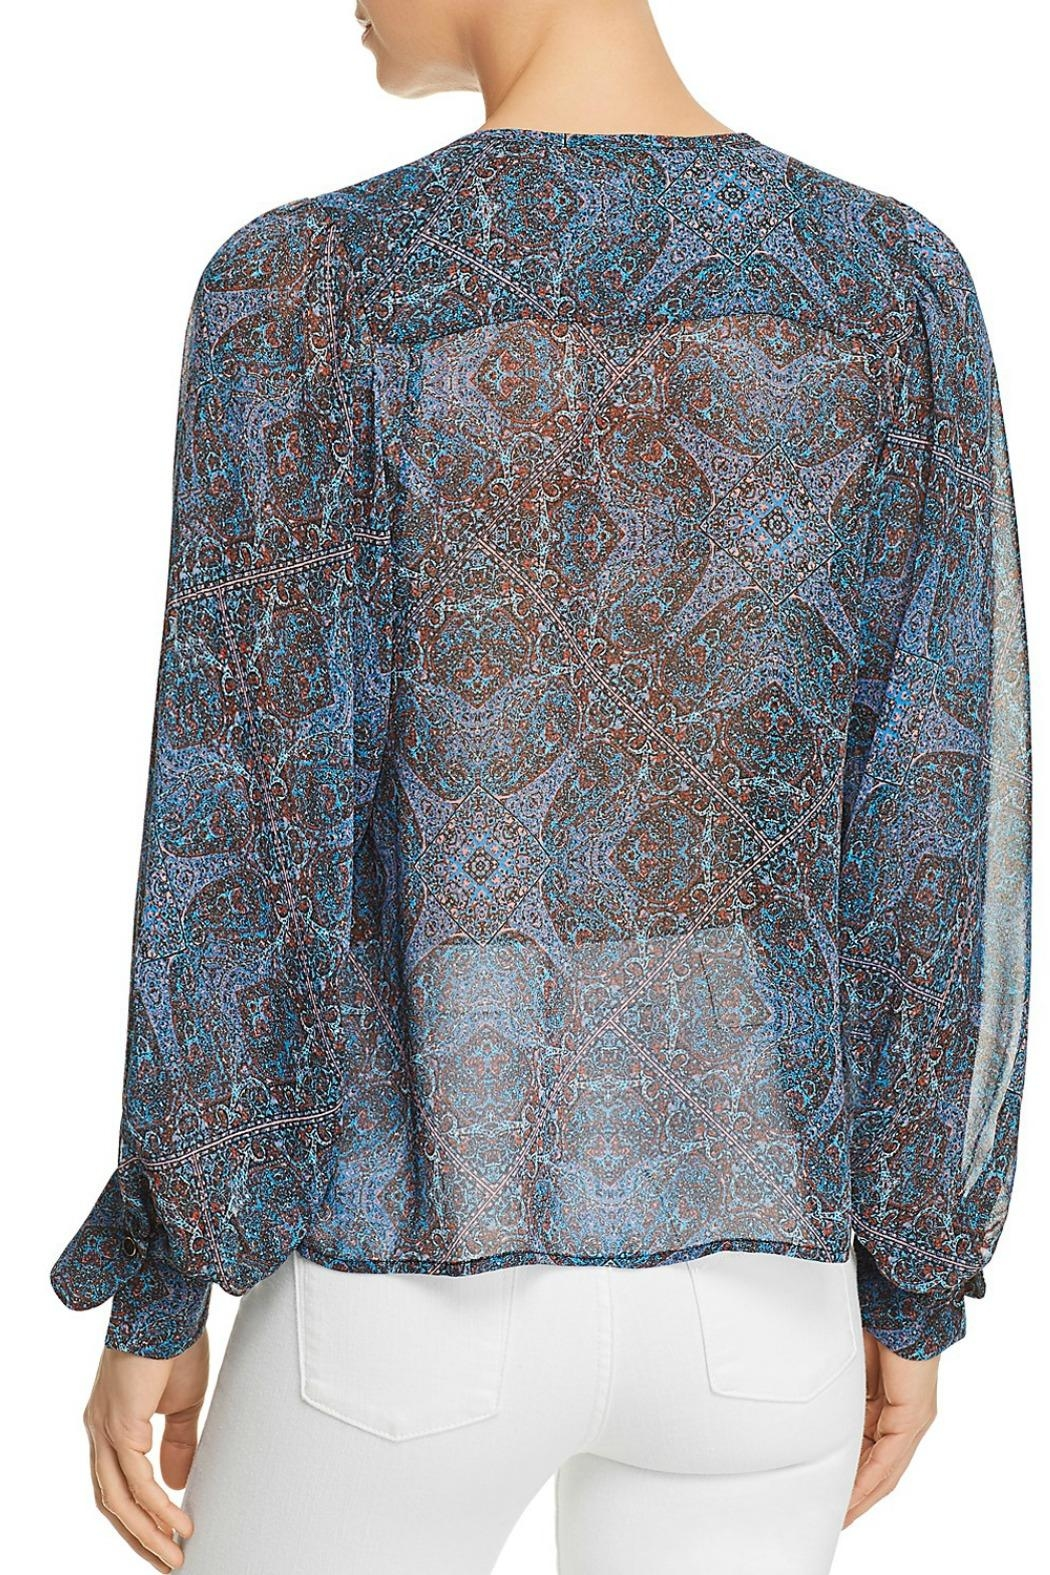 Ella Moss Tapestry Print Top - Front Full Image